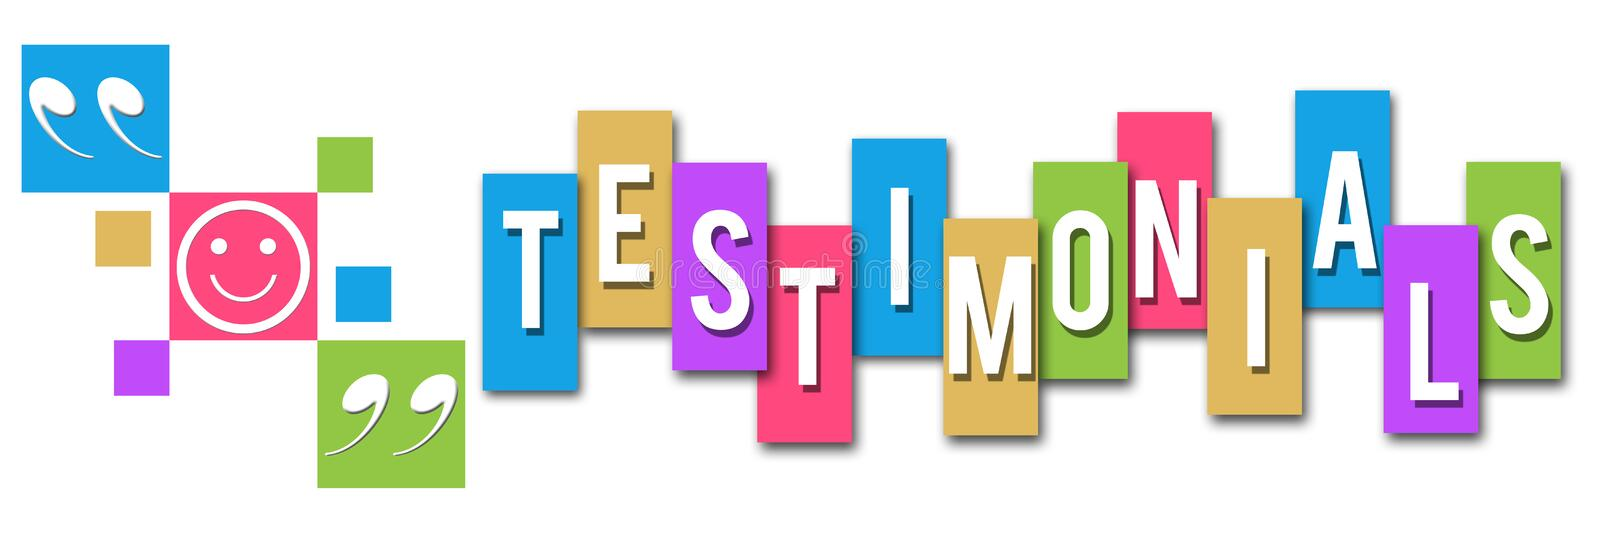 Testimonials Colorful Squares Elements. Testimonials concept image with elements and text over various colorful background royalty free illustration